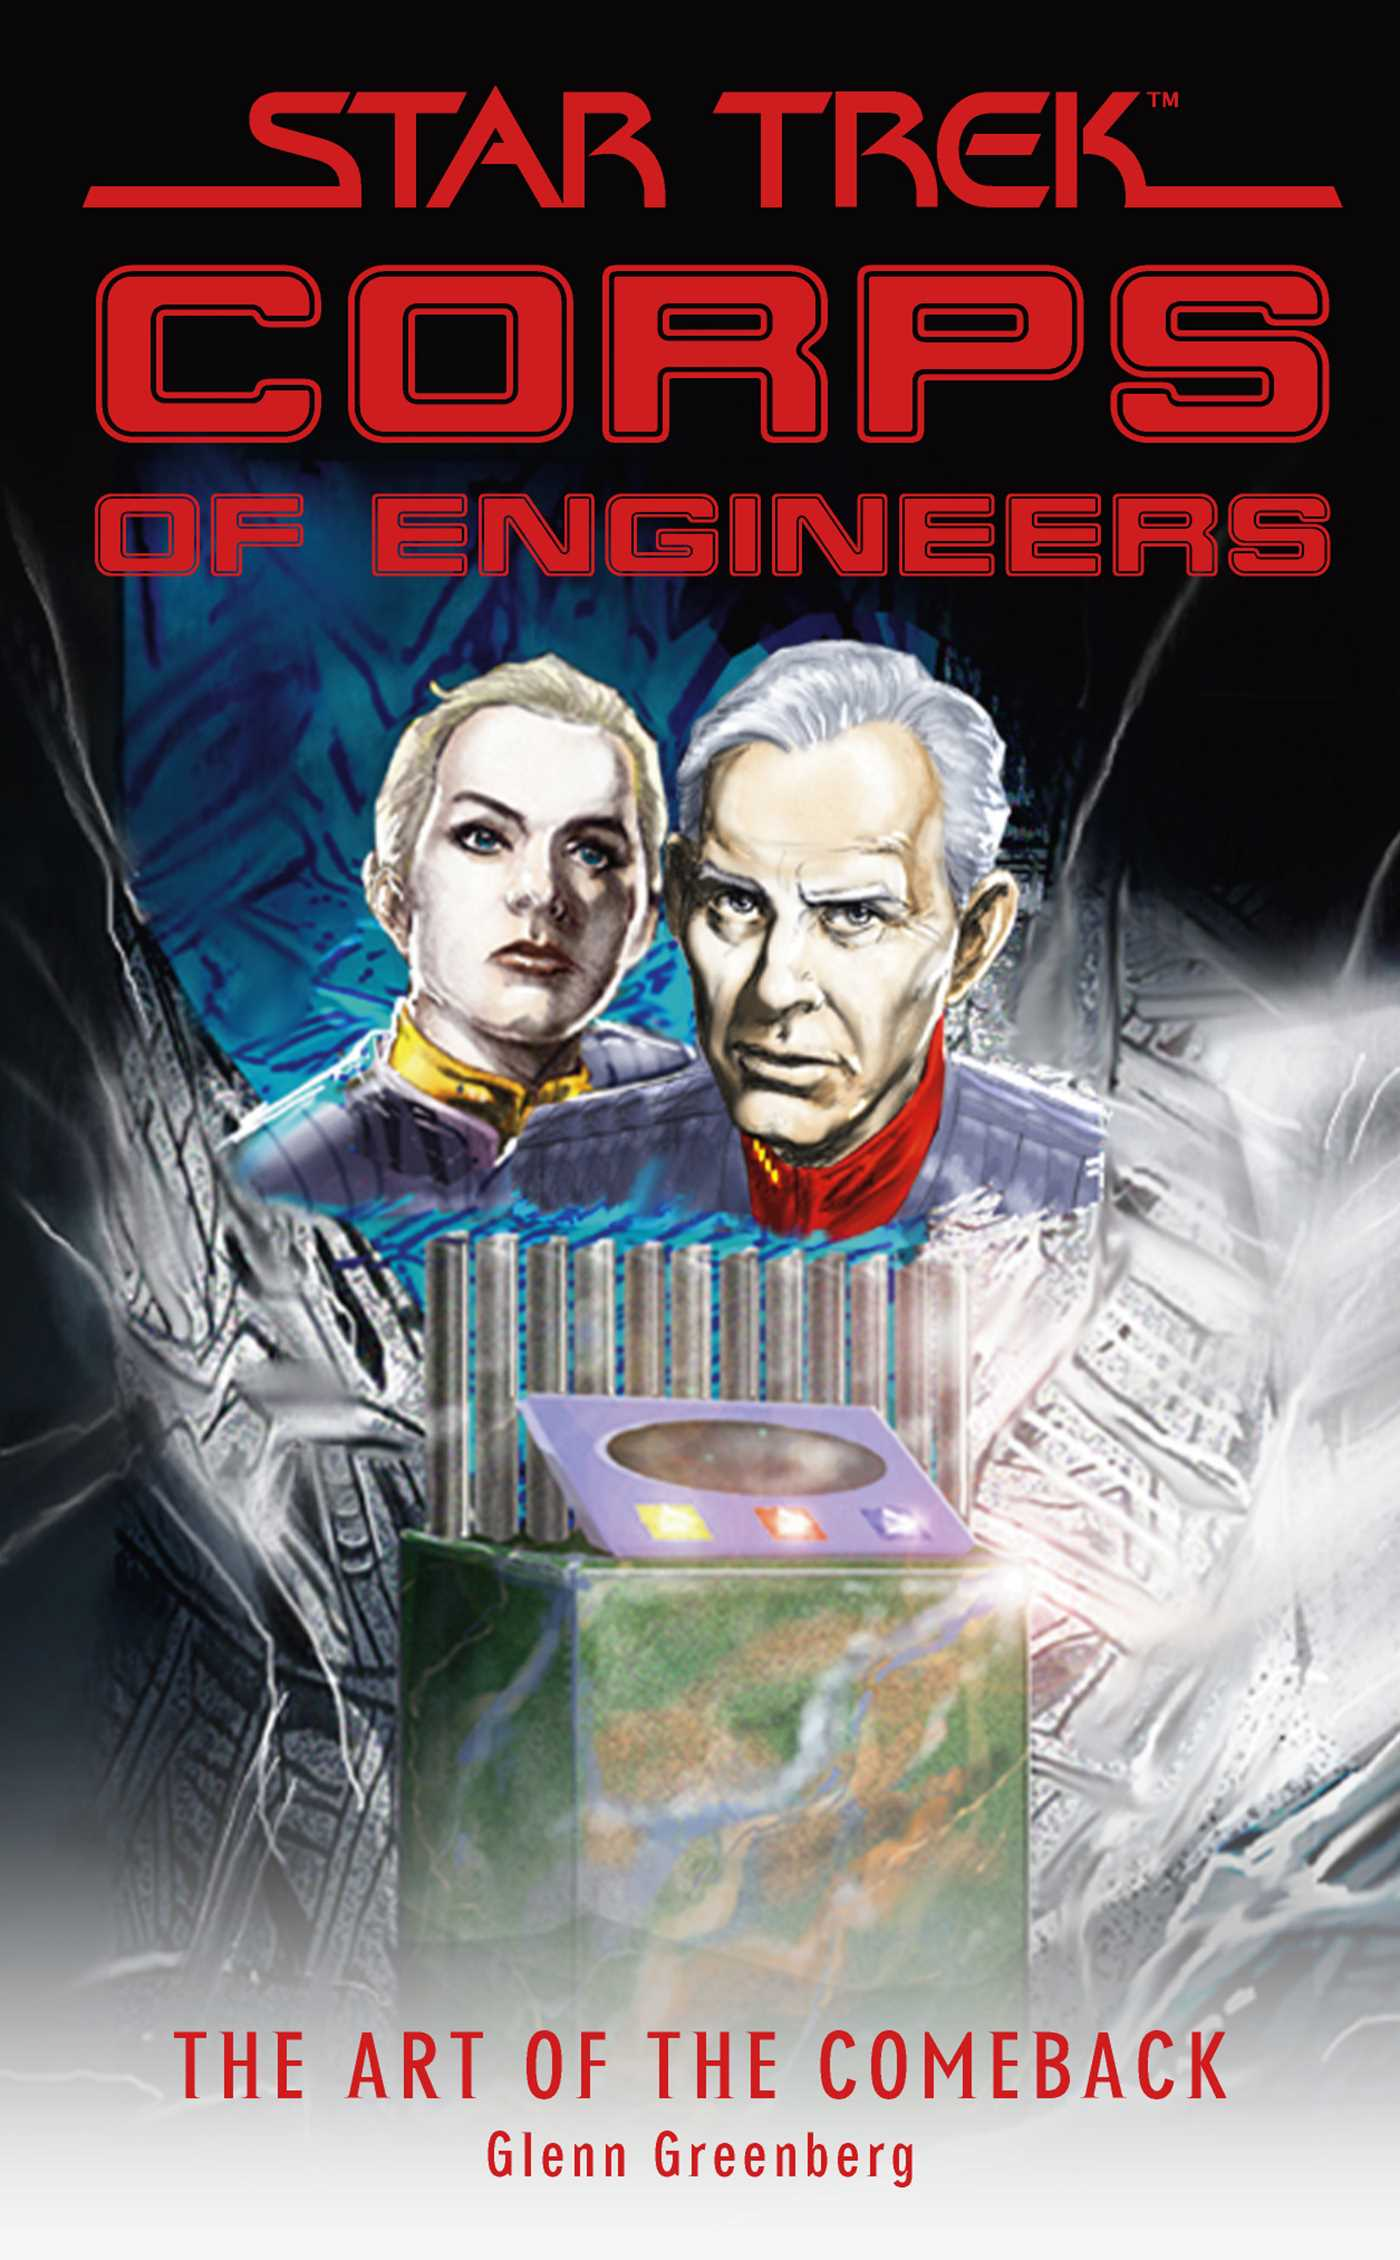 Star trek corps of engineers the art of the comeback 9781416549789 hr